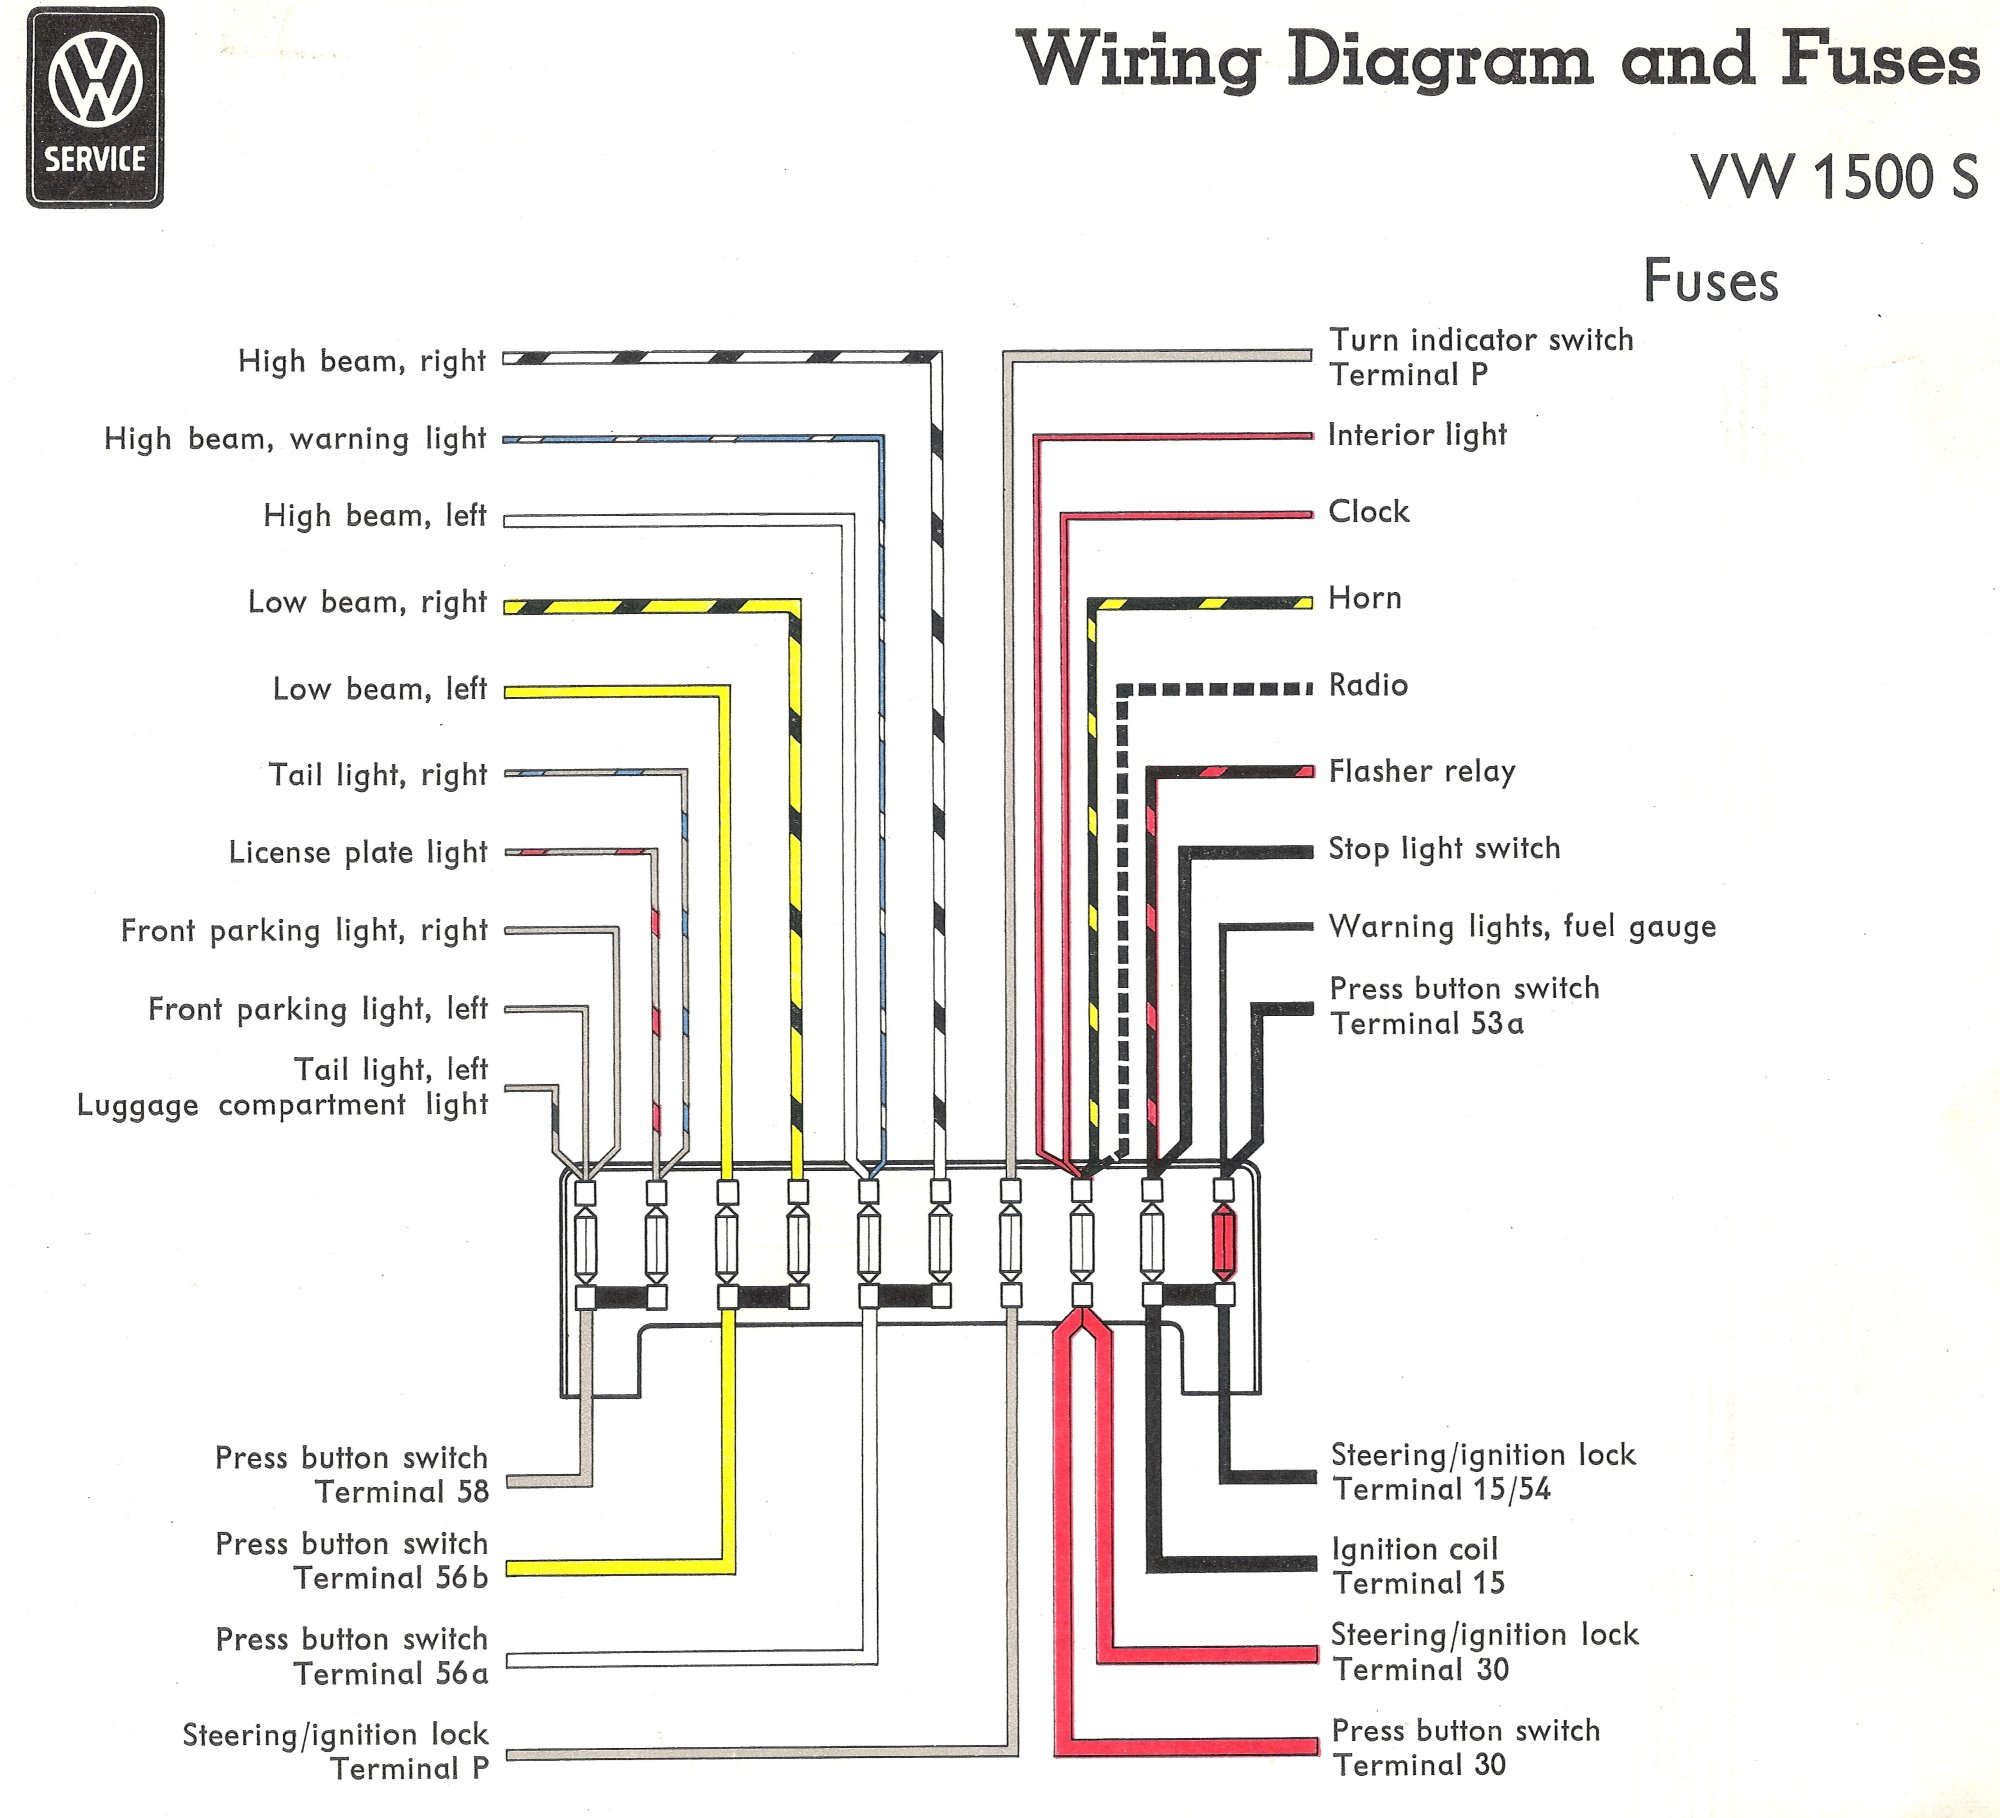 hight resolution of 1968 vw fuse box wiring diagram1968 vw beetle fuse box wiring diagram name1968 vw bug fuse